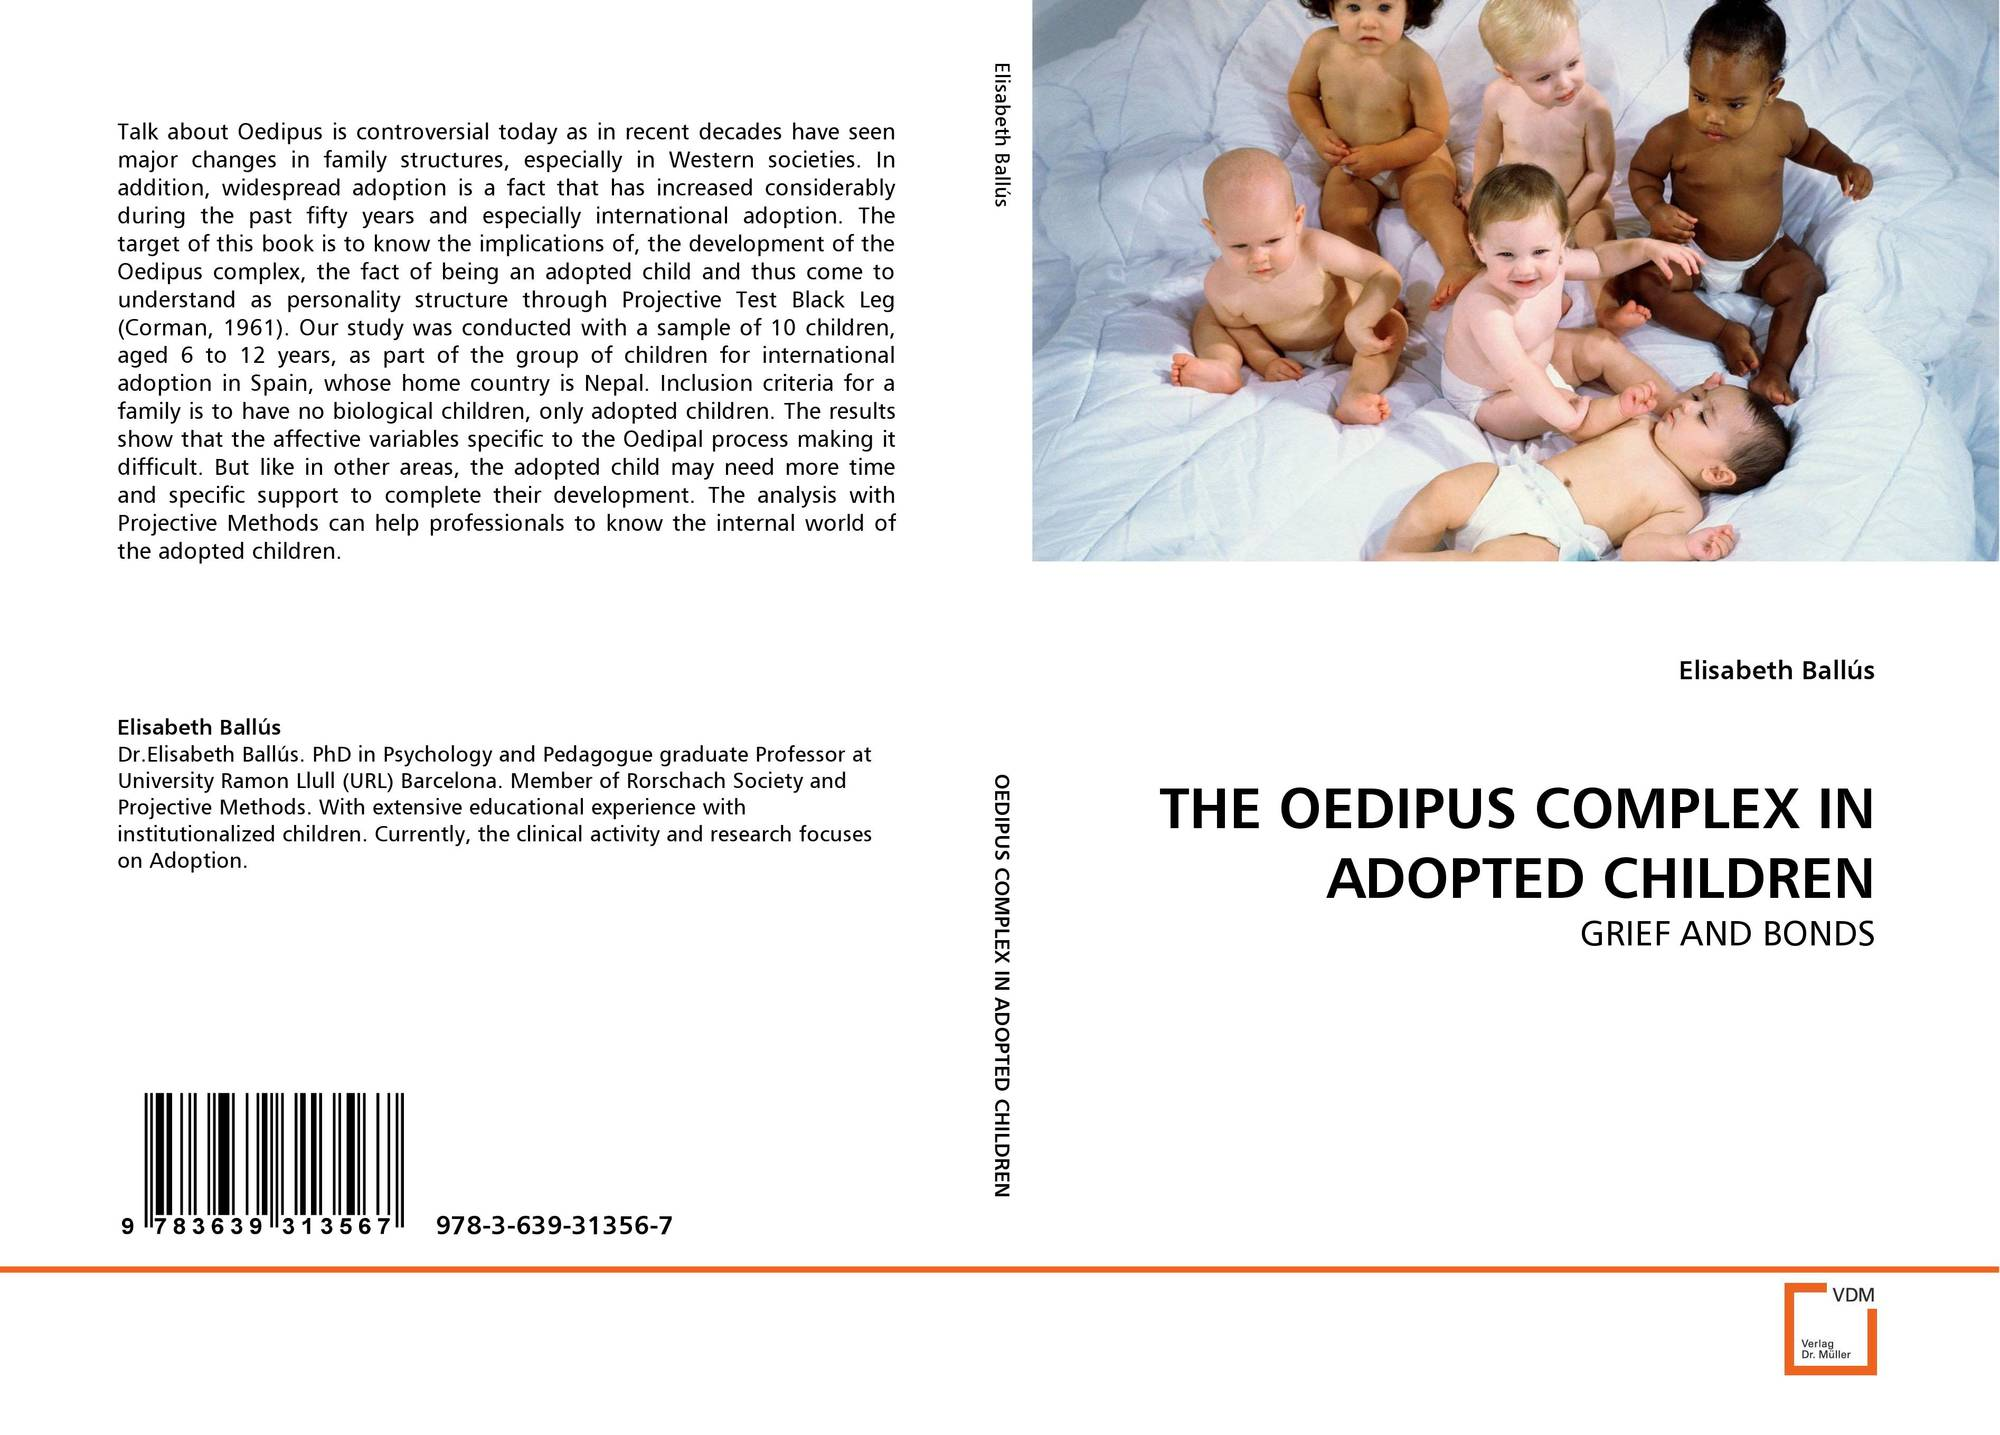 oepidus complex Oedipus complex definition is - the positive libidinal feelings of a child toward the parent of the opposite sex and hostile or jealous feelings toward the parent of the same sex that in freudian psychoanalytic theory may be a source of adult personality disorder when unresolved.